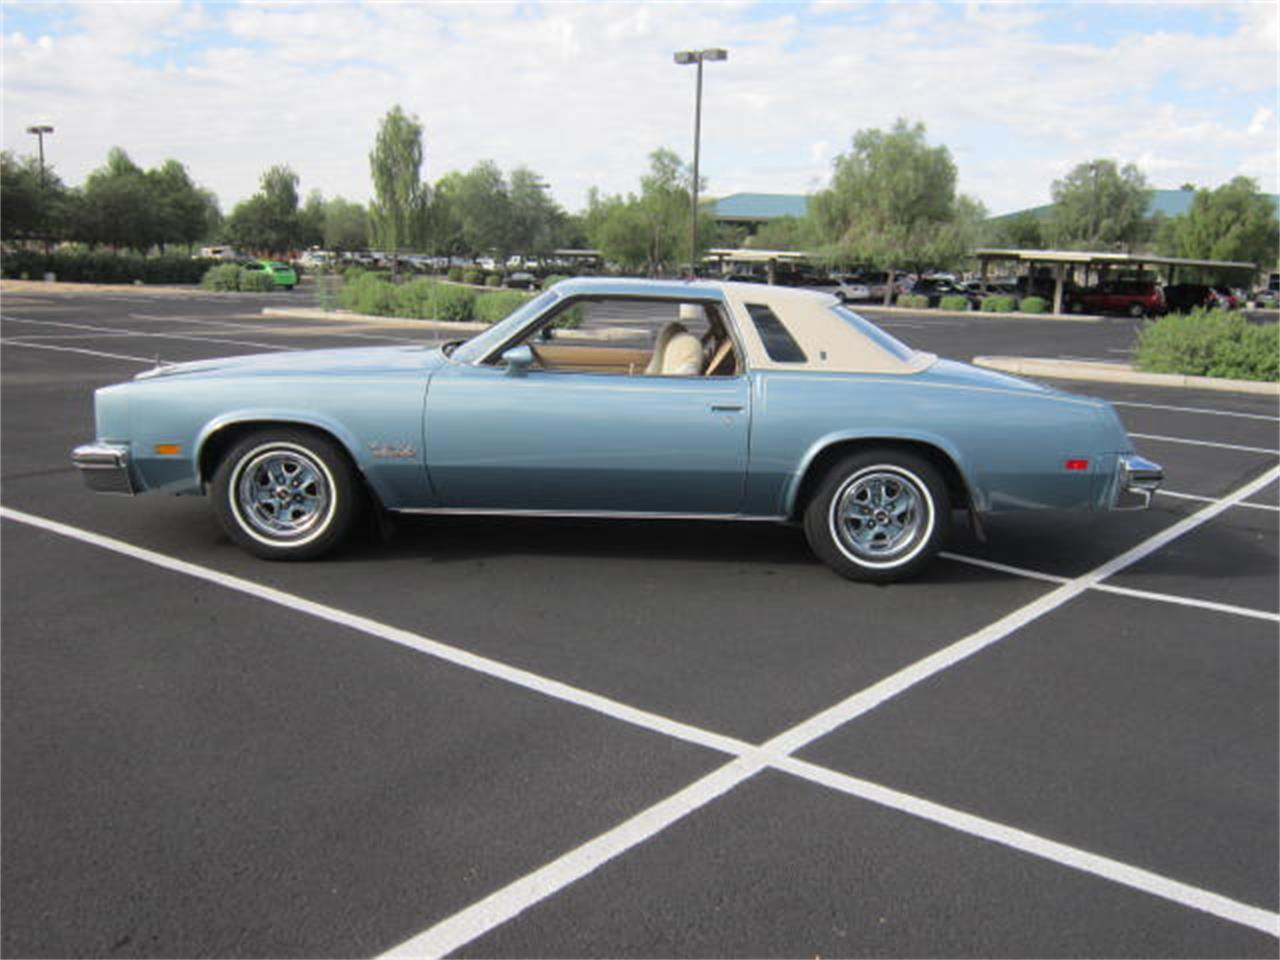 Large Picture of 1977 Cutlass - $15,000.00 Offered by a Private Seller - DISY